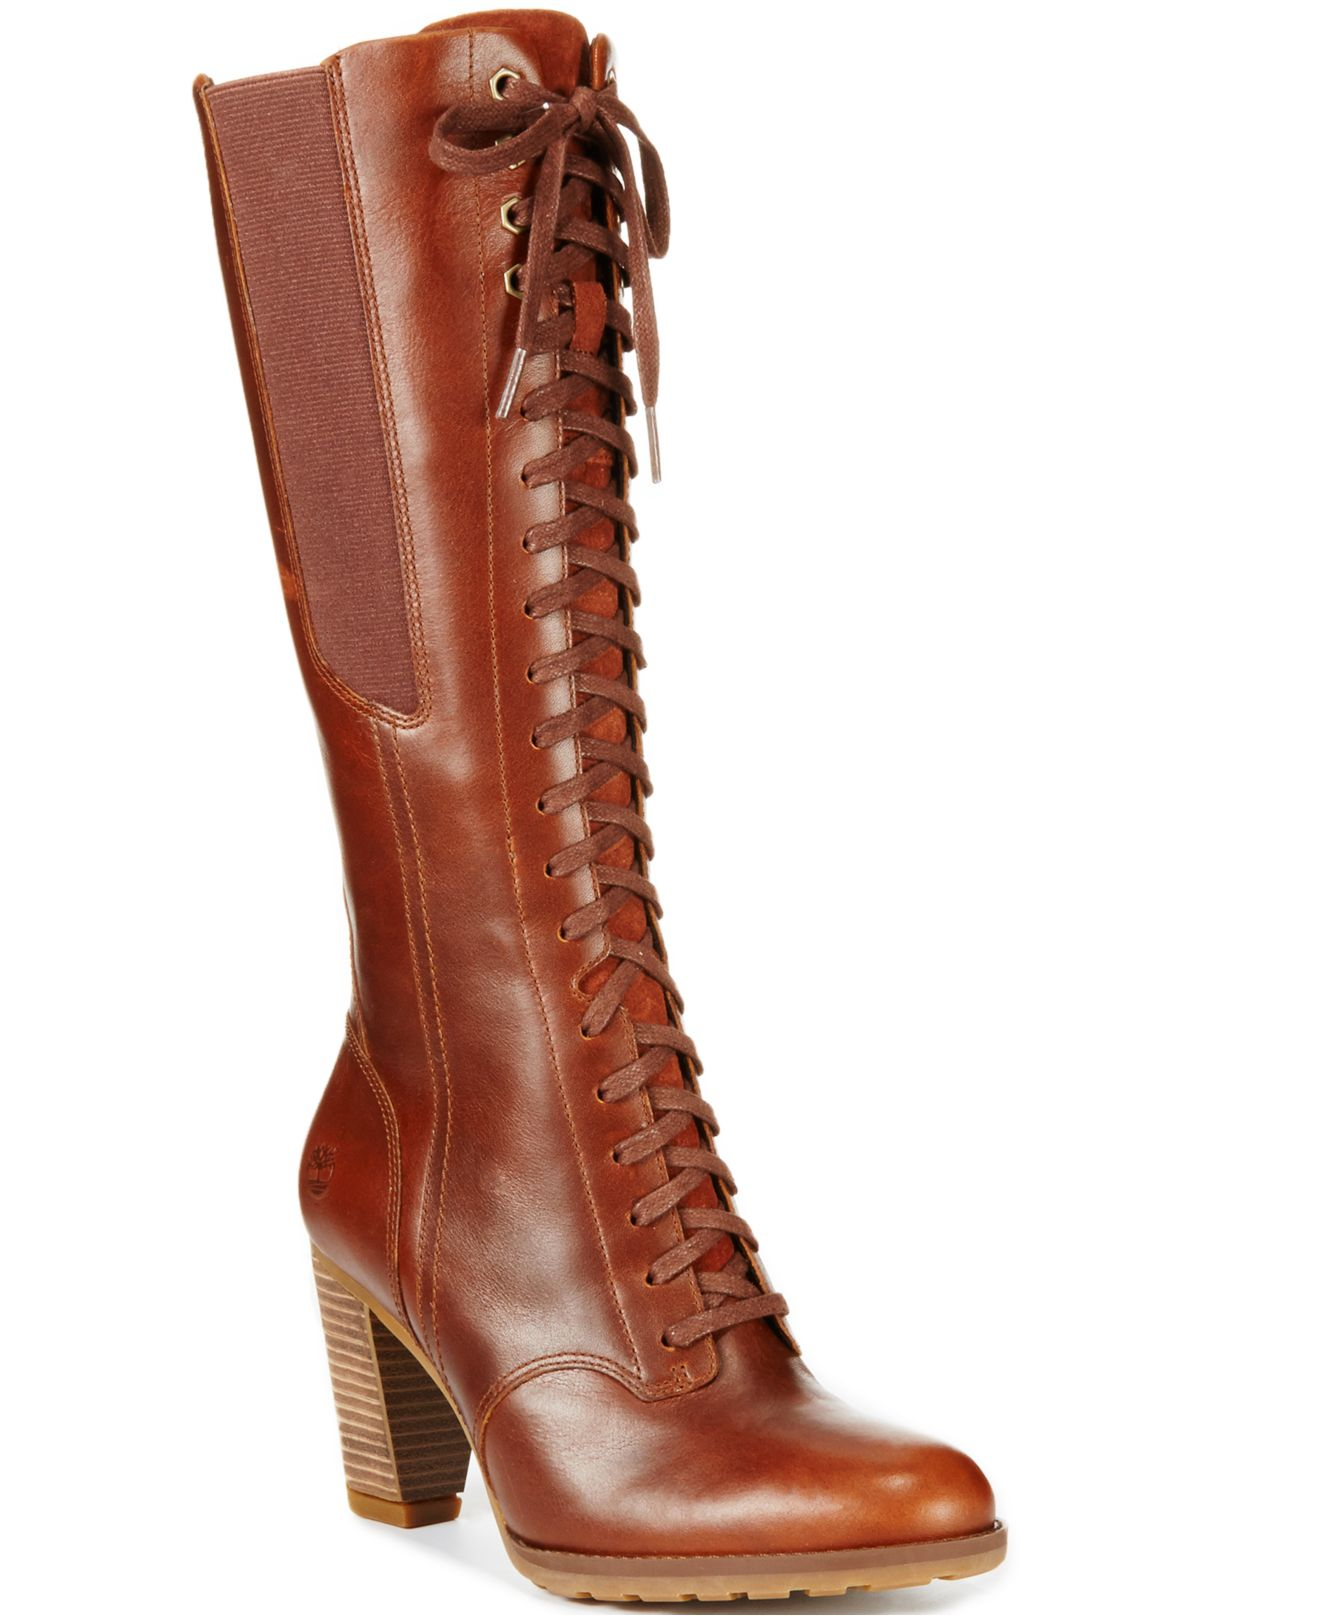 6ee6fd18712 Lyst - Timberland Women S Earthkeepers Stratham Heights Tall Lace ...